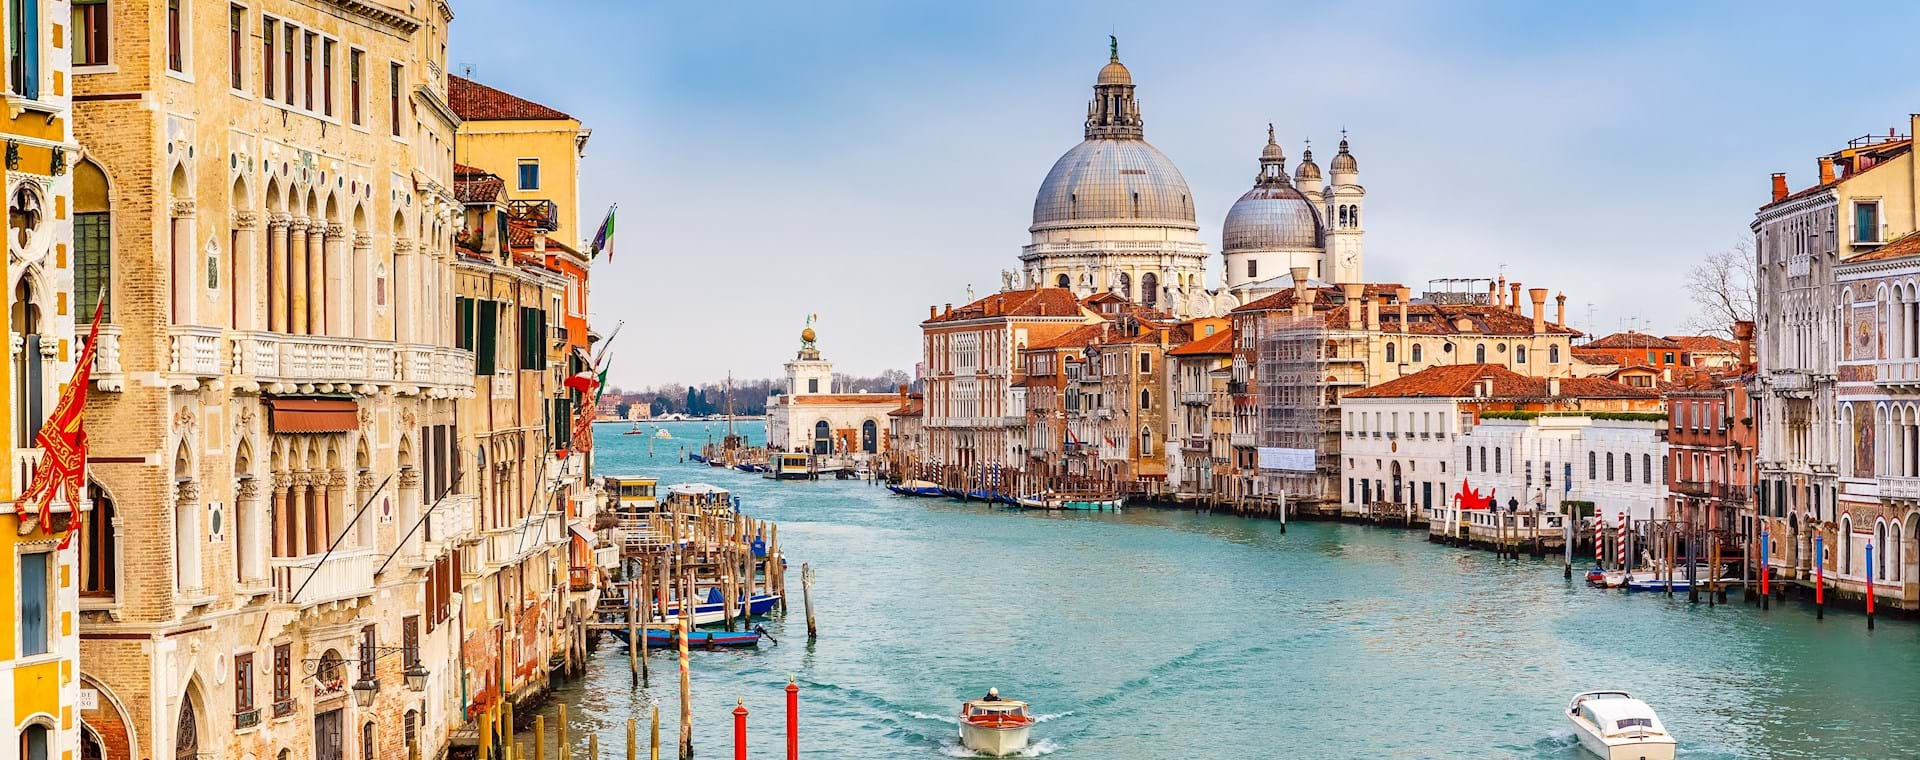 Semi-Private Tour: Best of Venice with St. Mark's Basilica Terraces & Water Taxi Ride